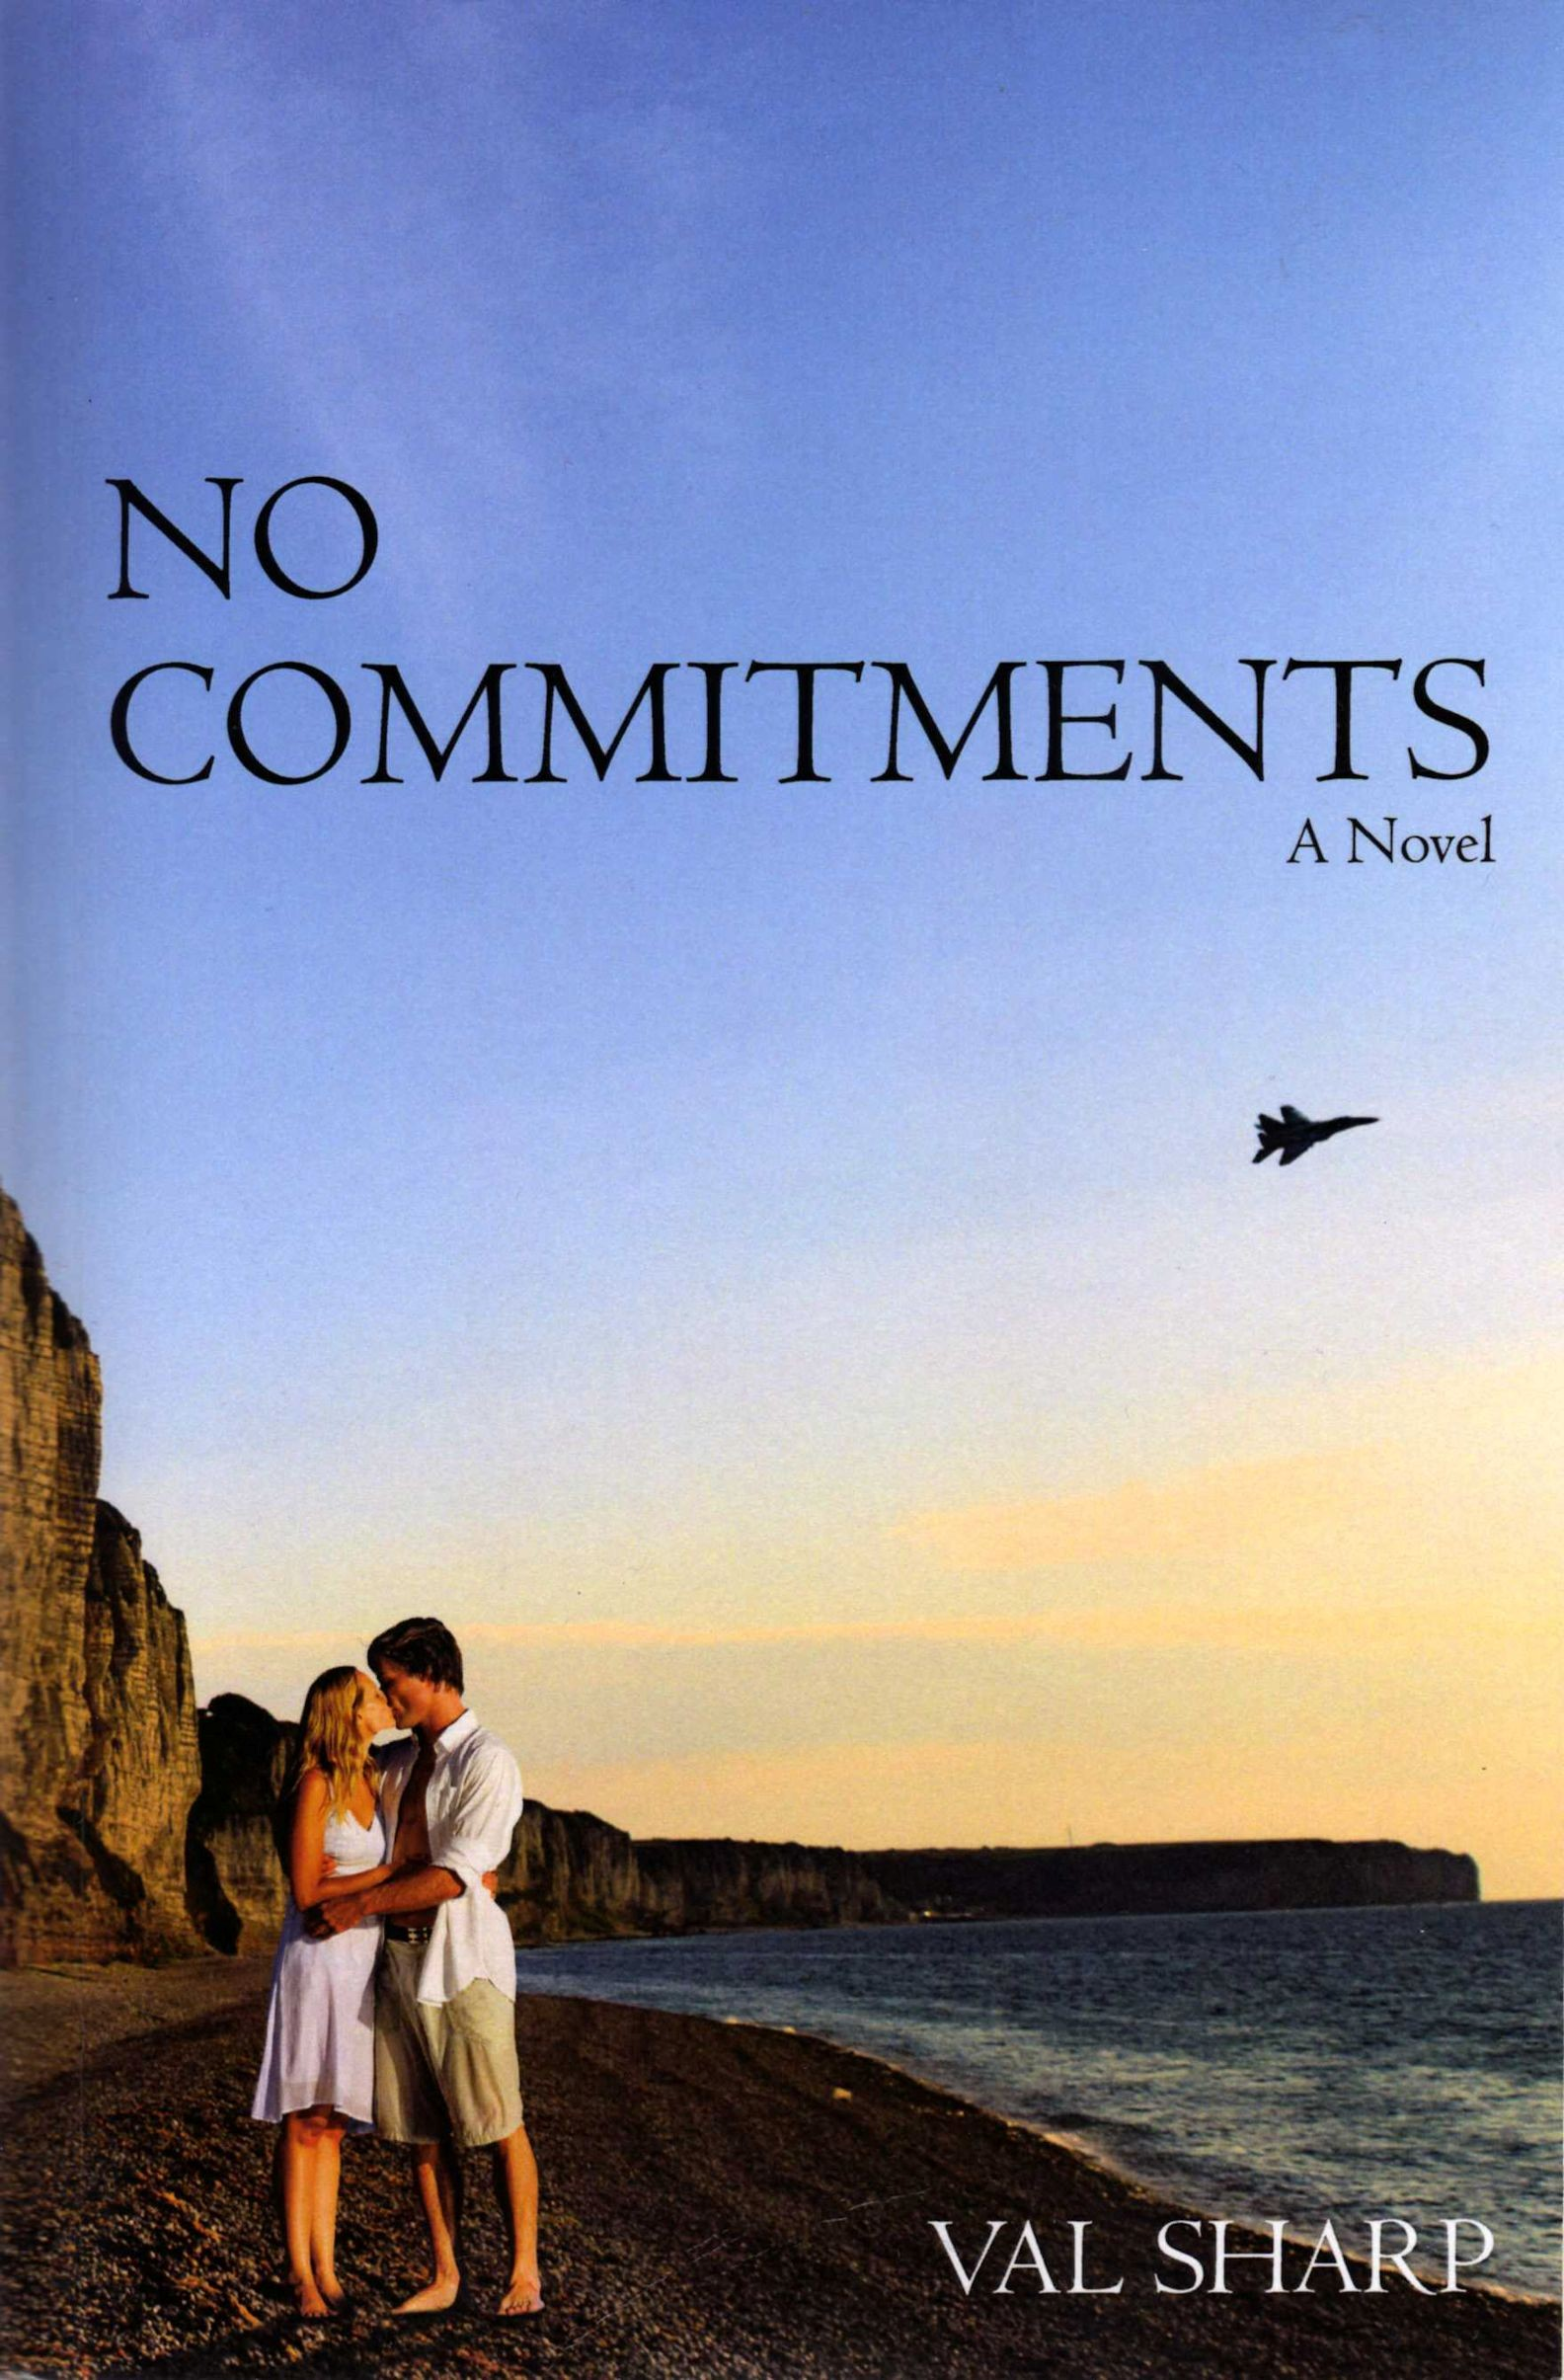 Dating for 9 months no commitment